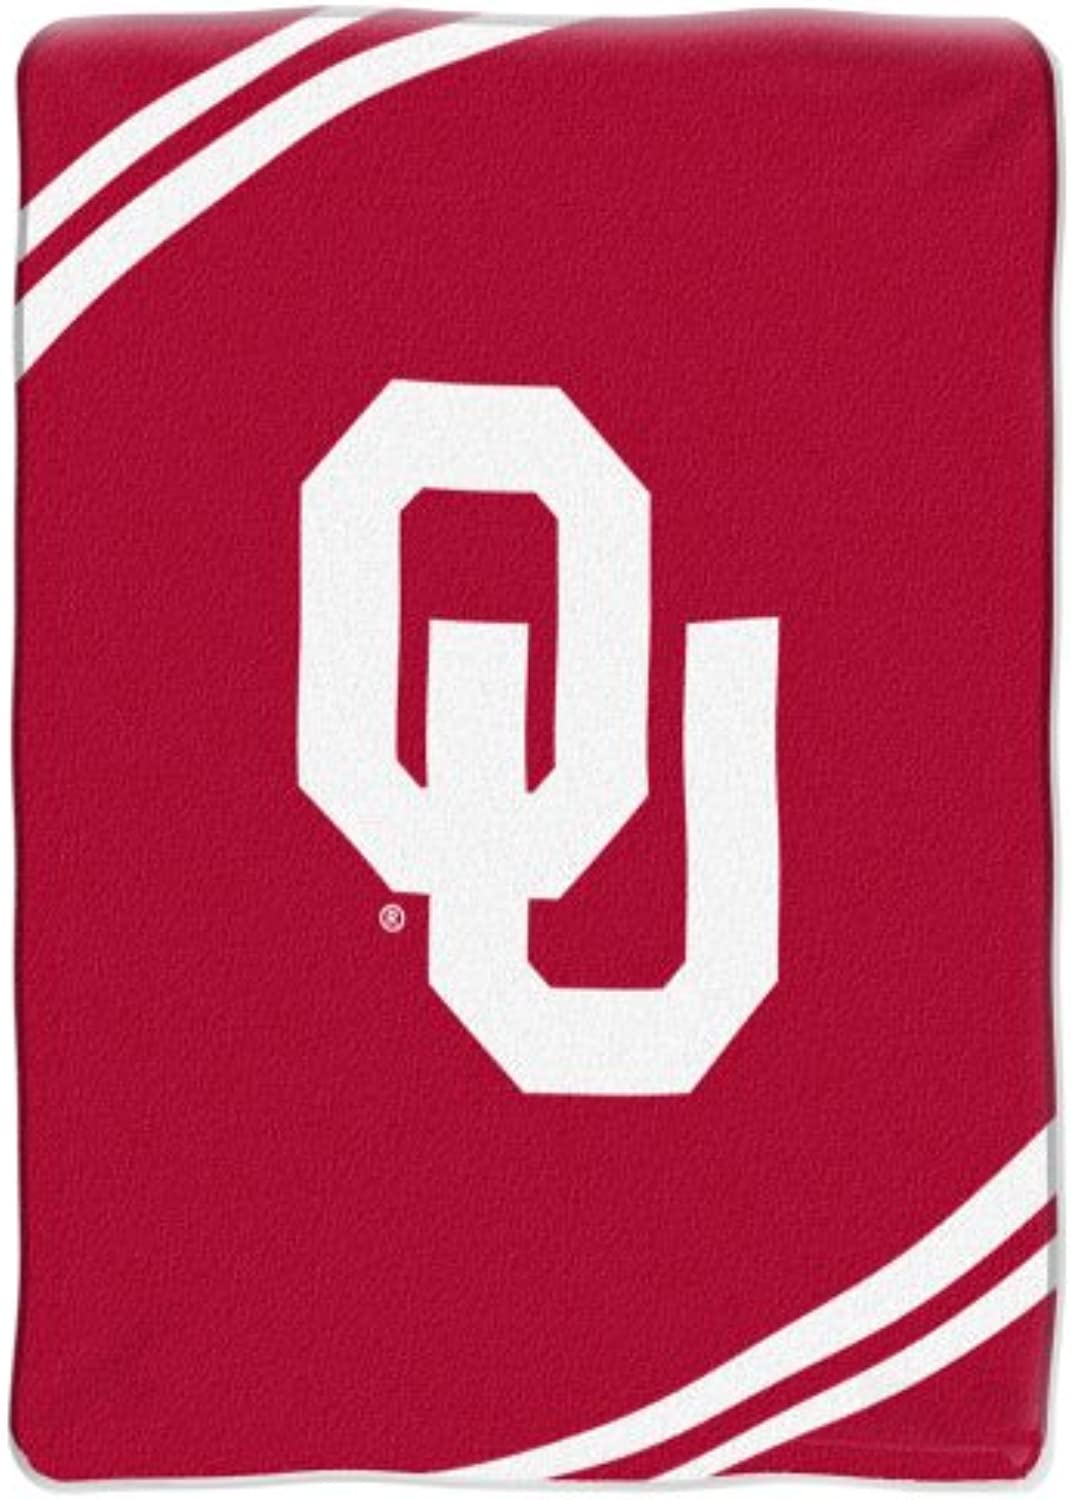 NCAA Oklahoma Sooners 60-Inch-by-80-Inch Raschel Plush Blanket Force  Design